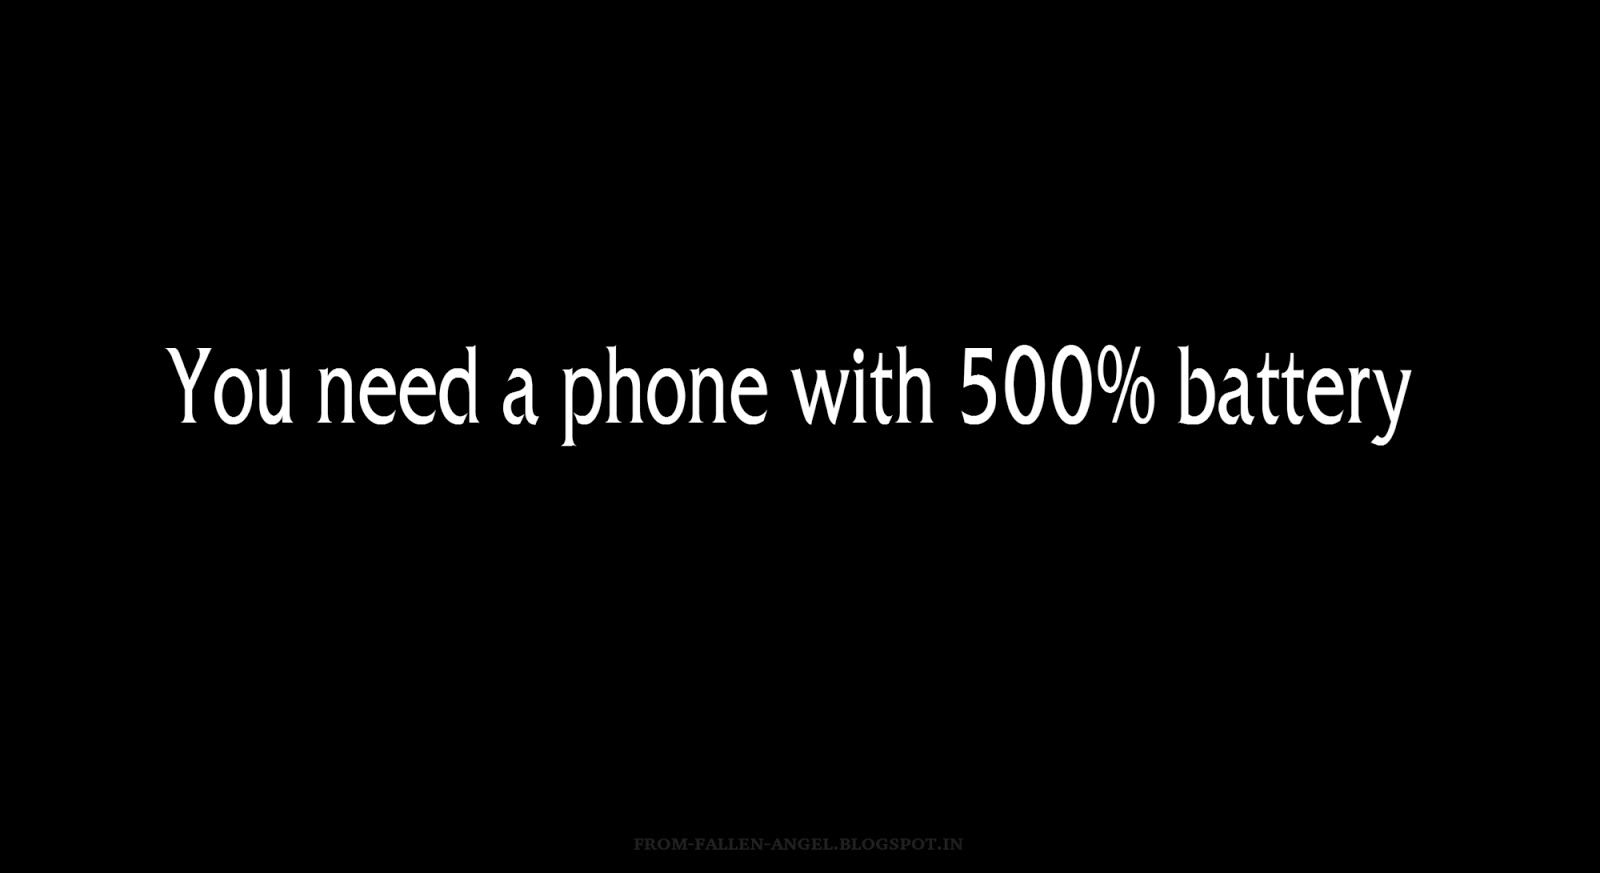 You need a phone with 500% battery